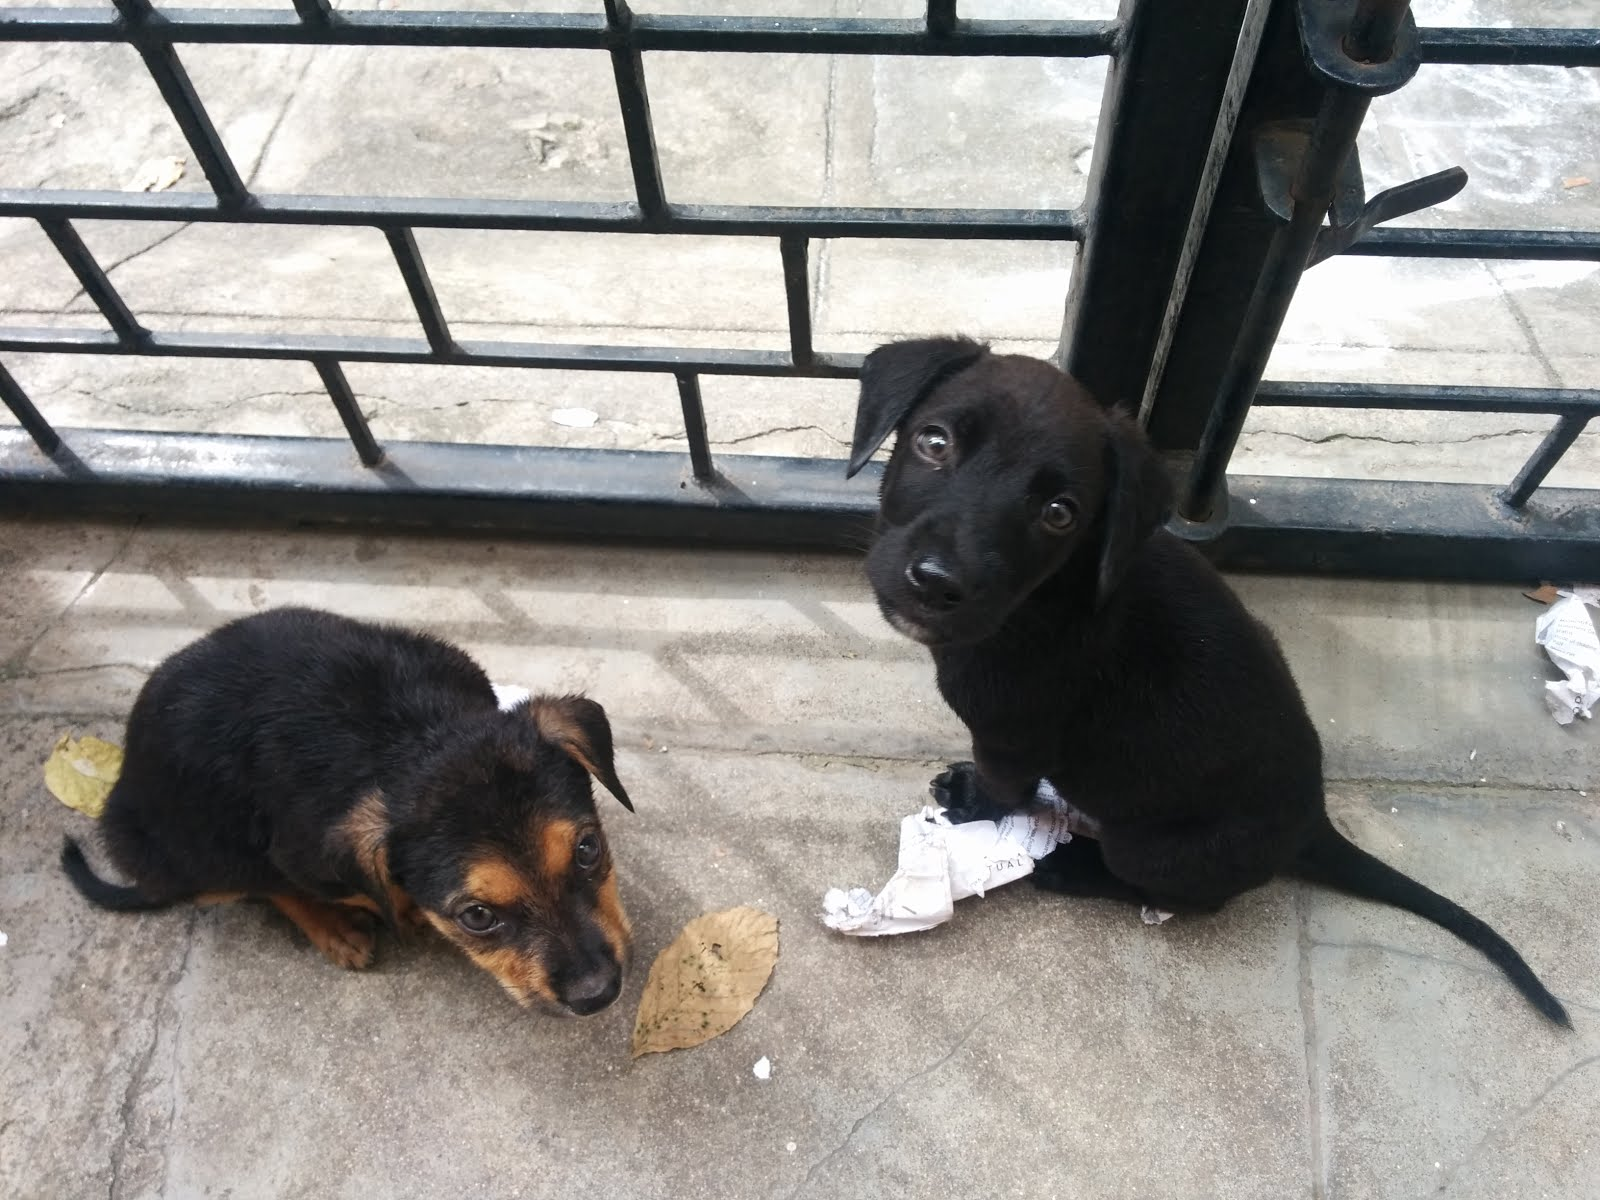 The 2 puppies that I adopted - Alpha and Omega